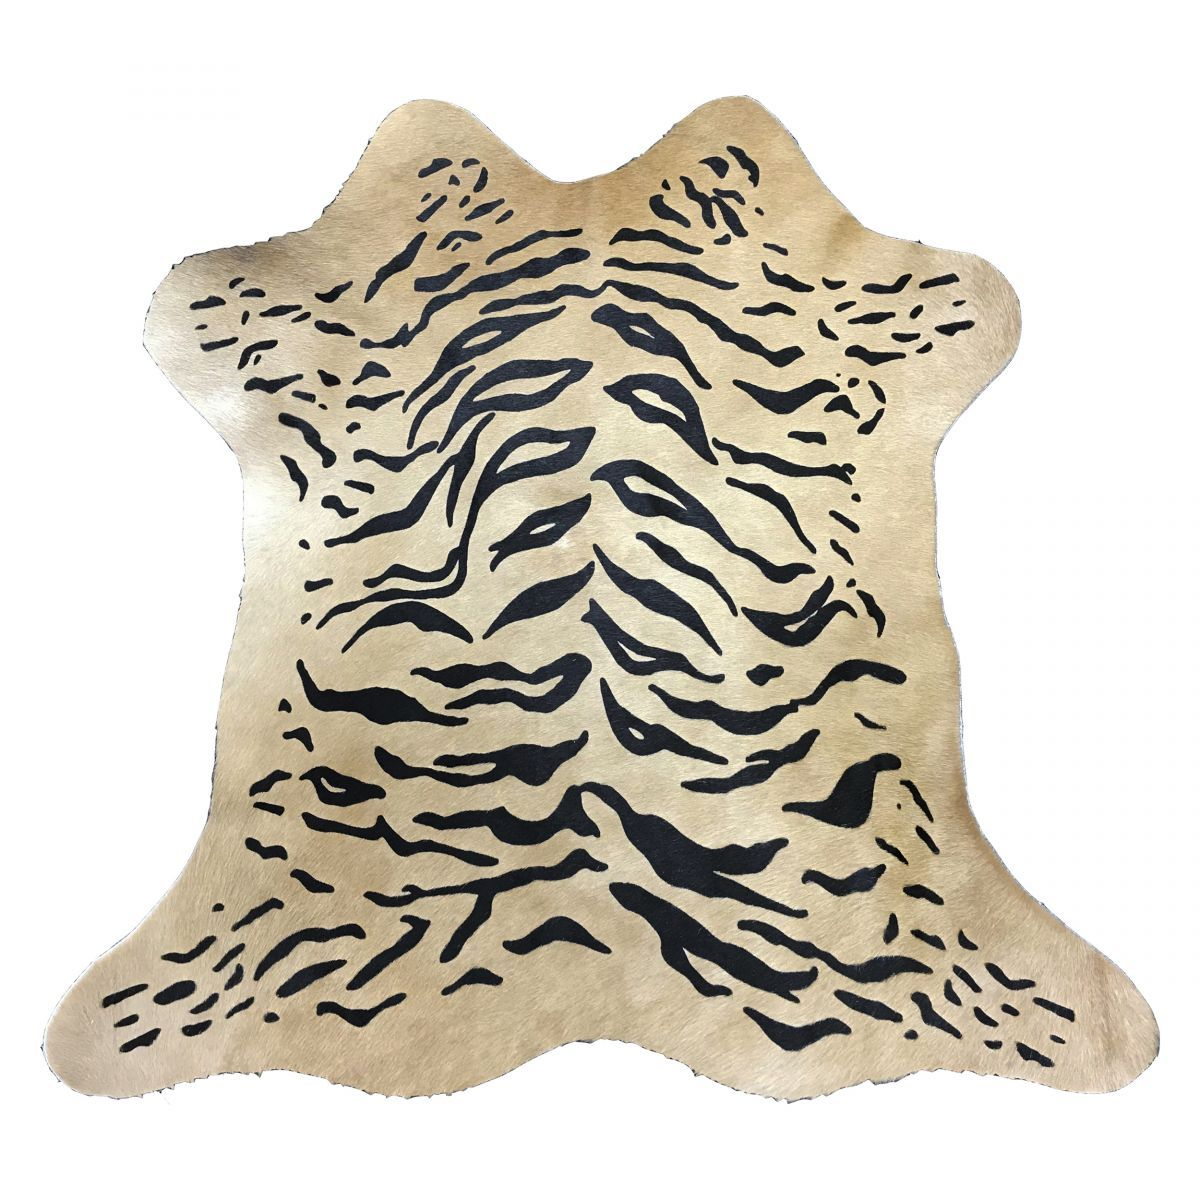 Hair-On Calfskin Print Beige Tiger